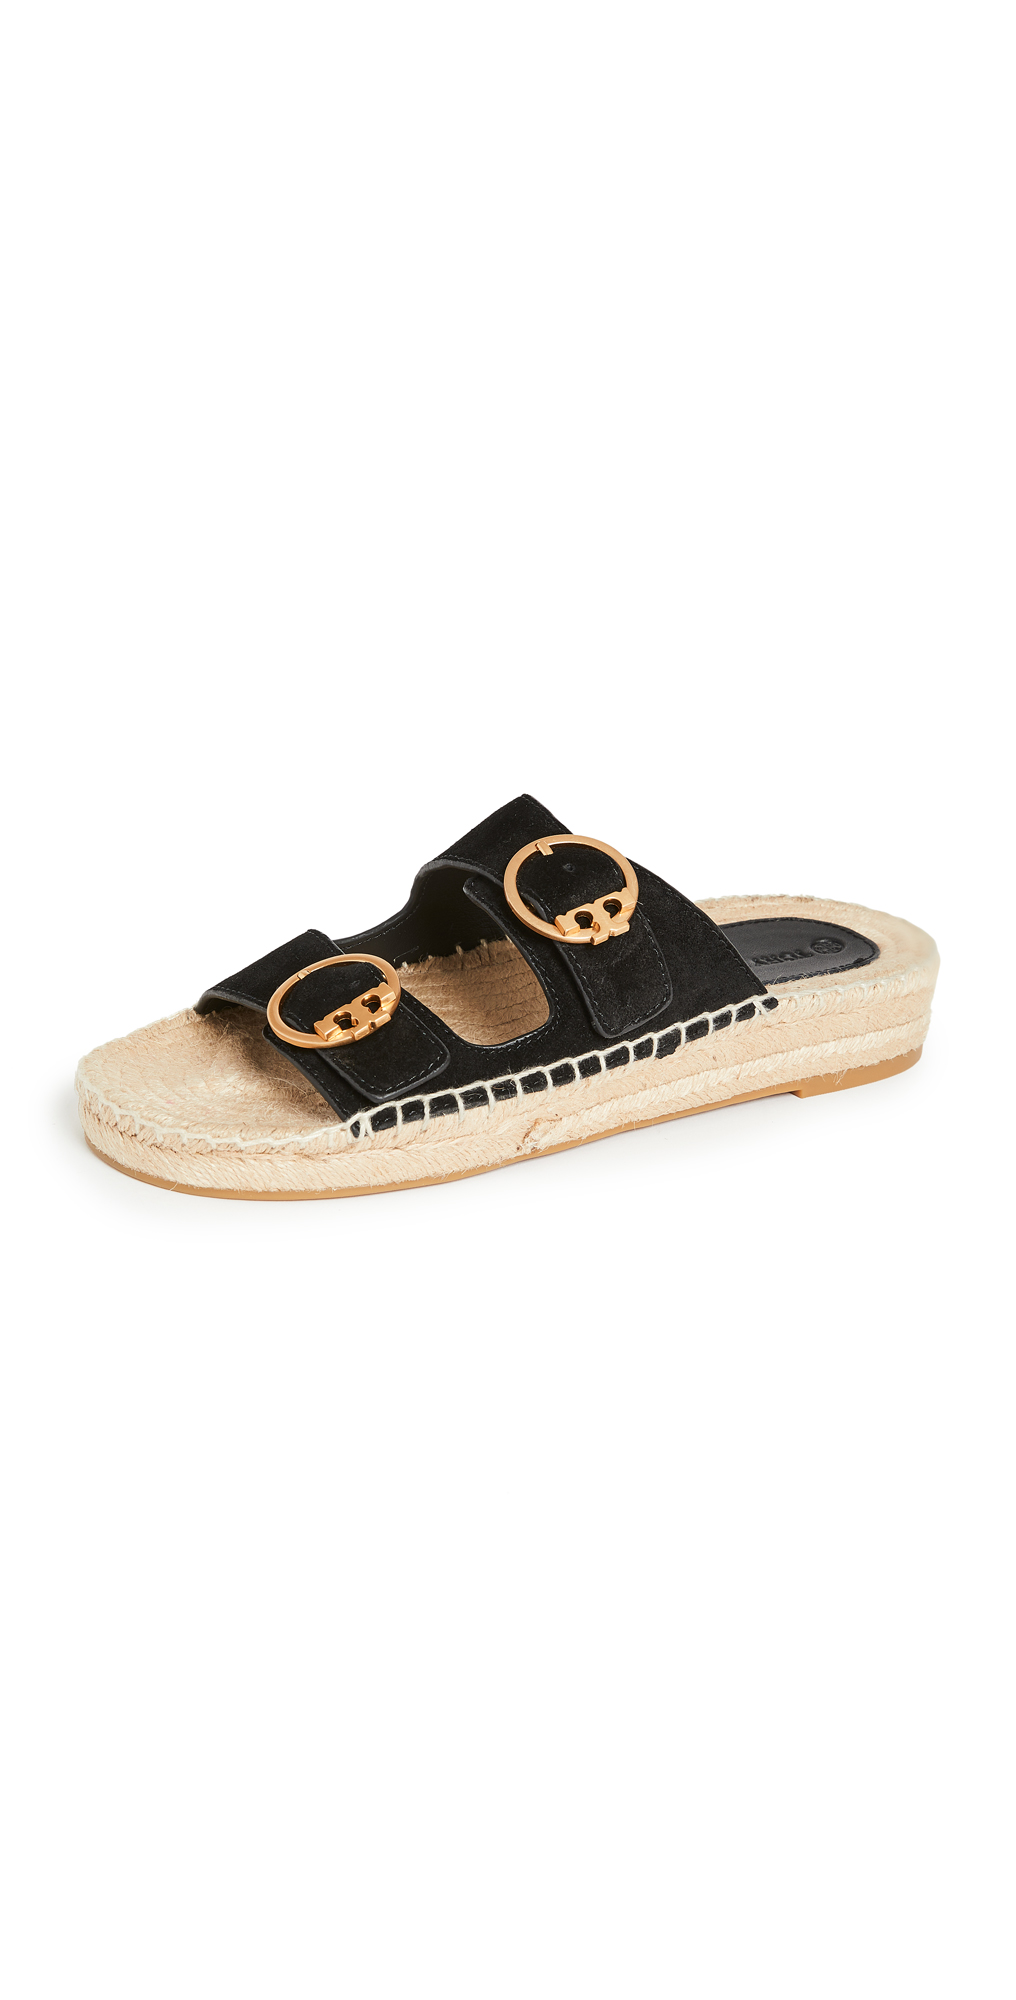 Tory Burch Selby Two Band Sandals